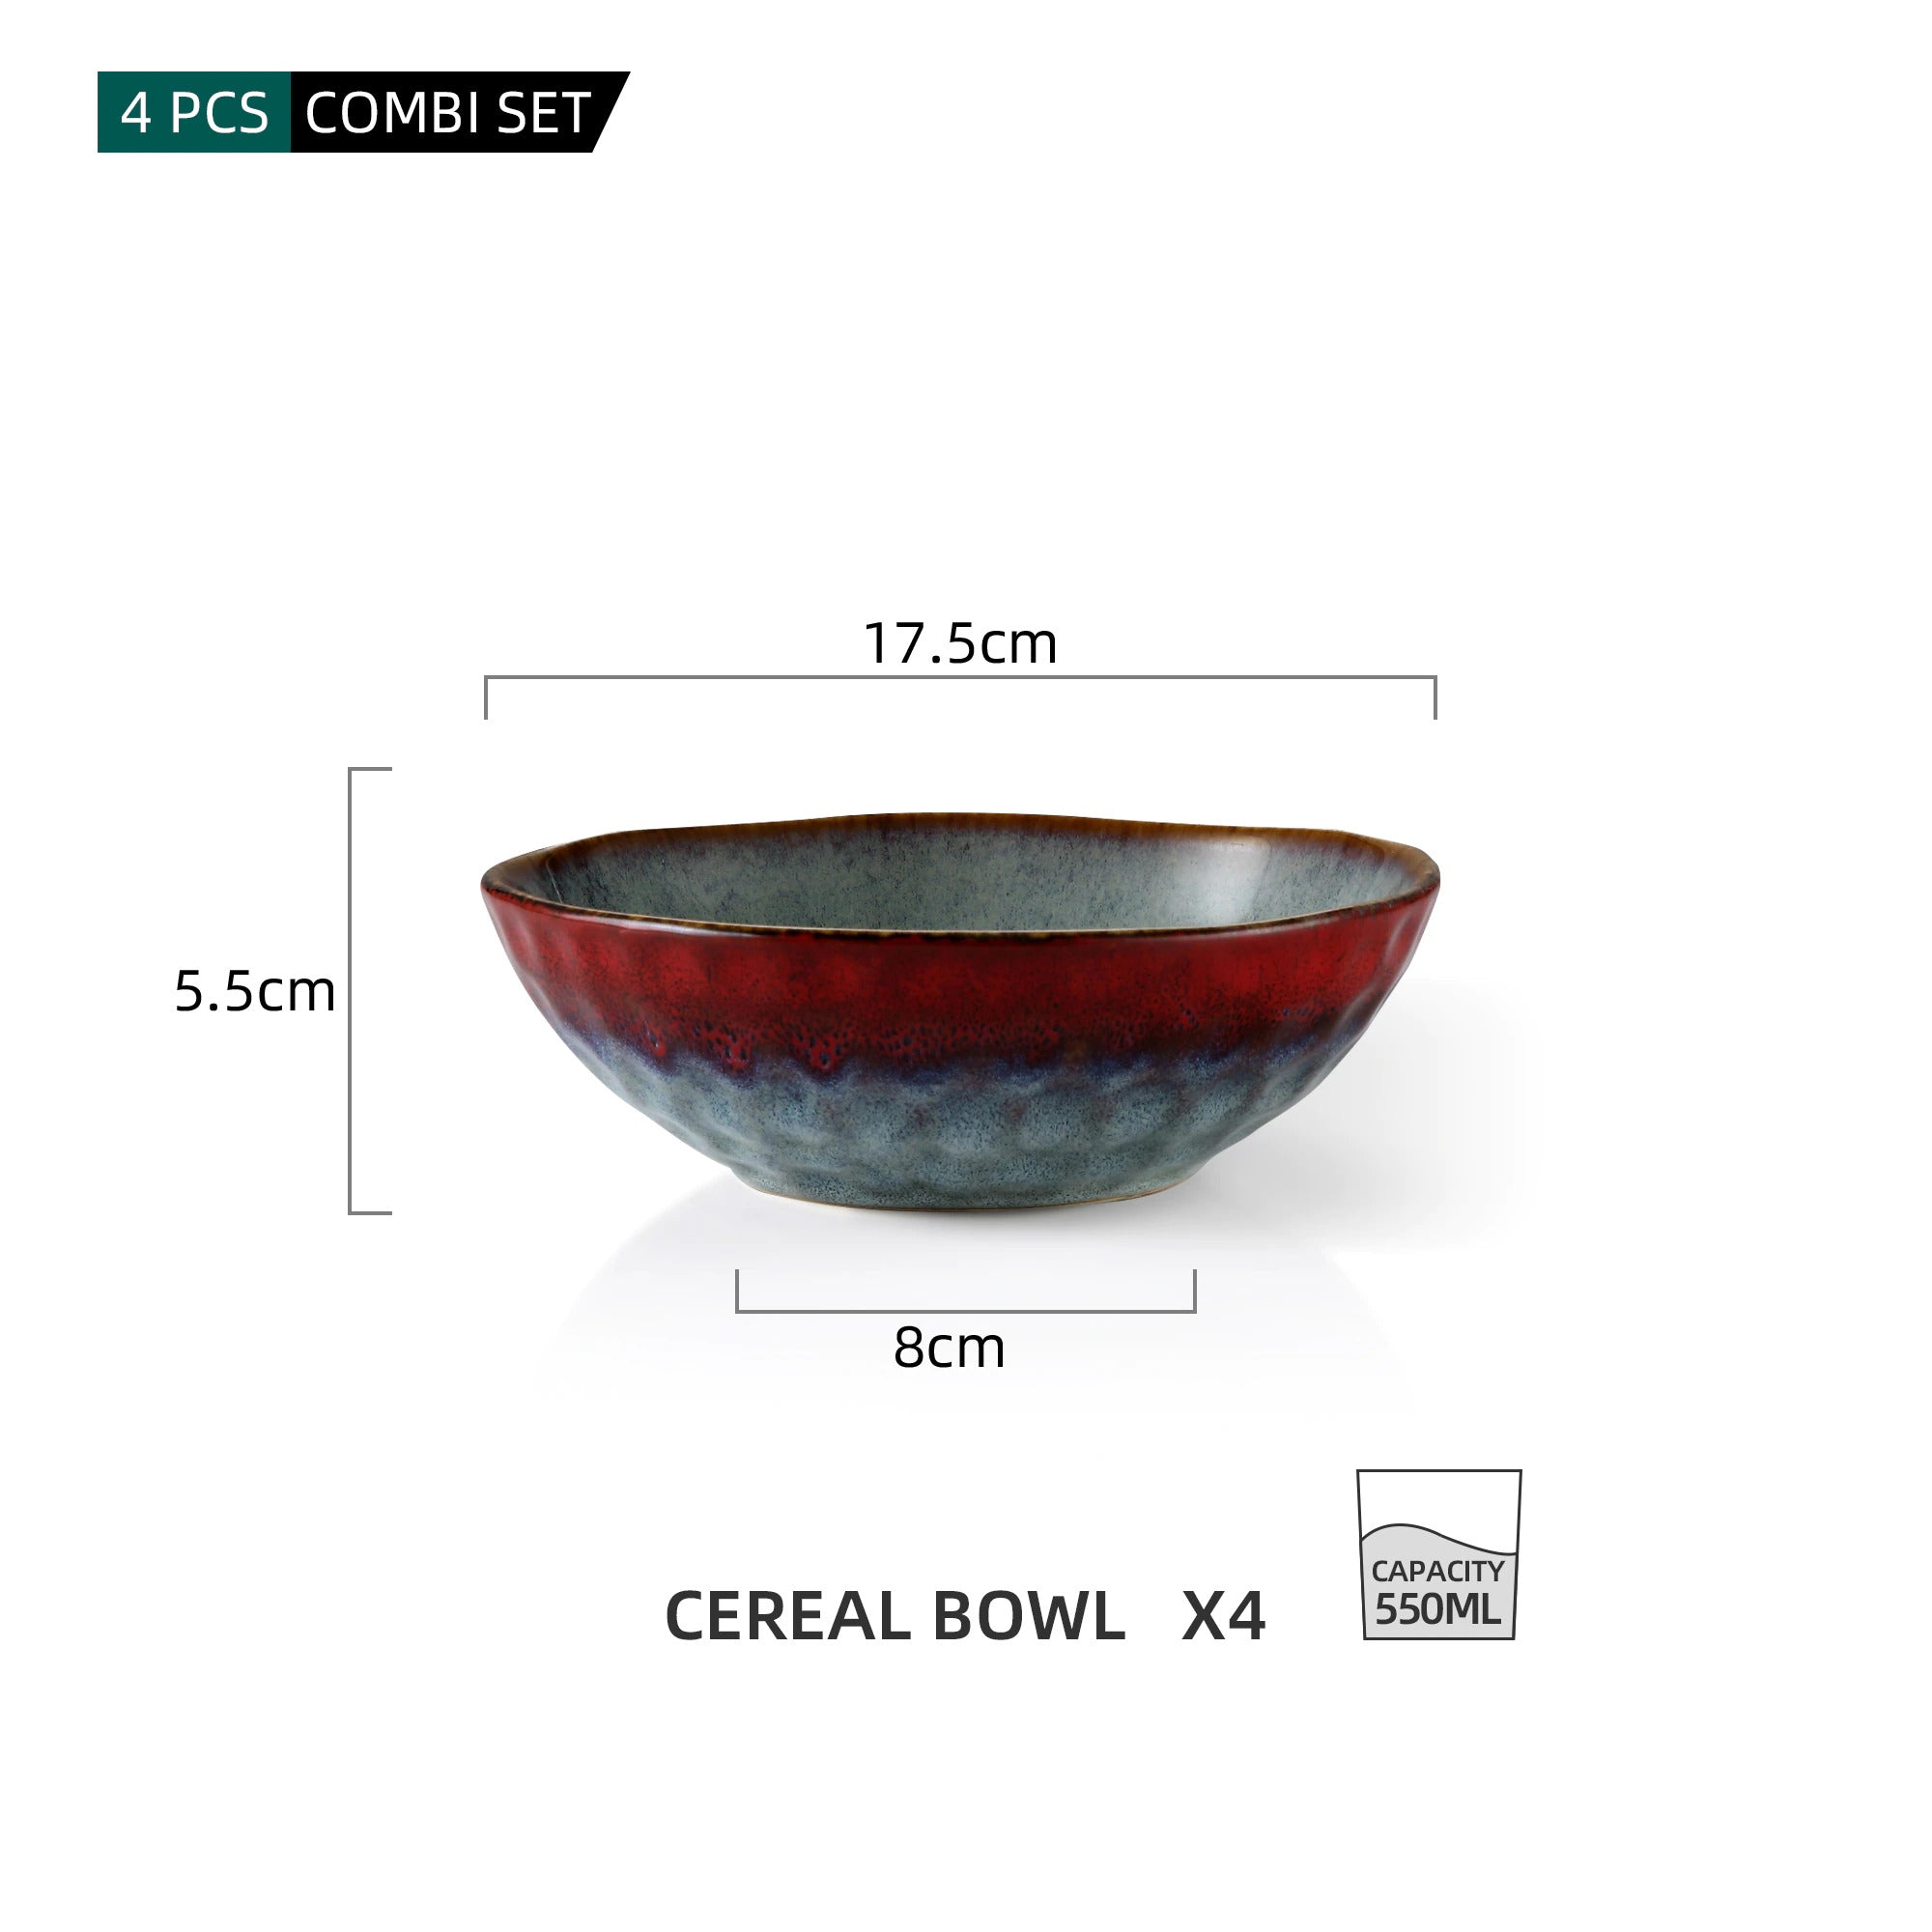 550ML Cereal Bowls